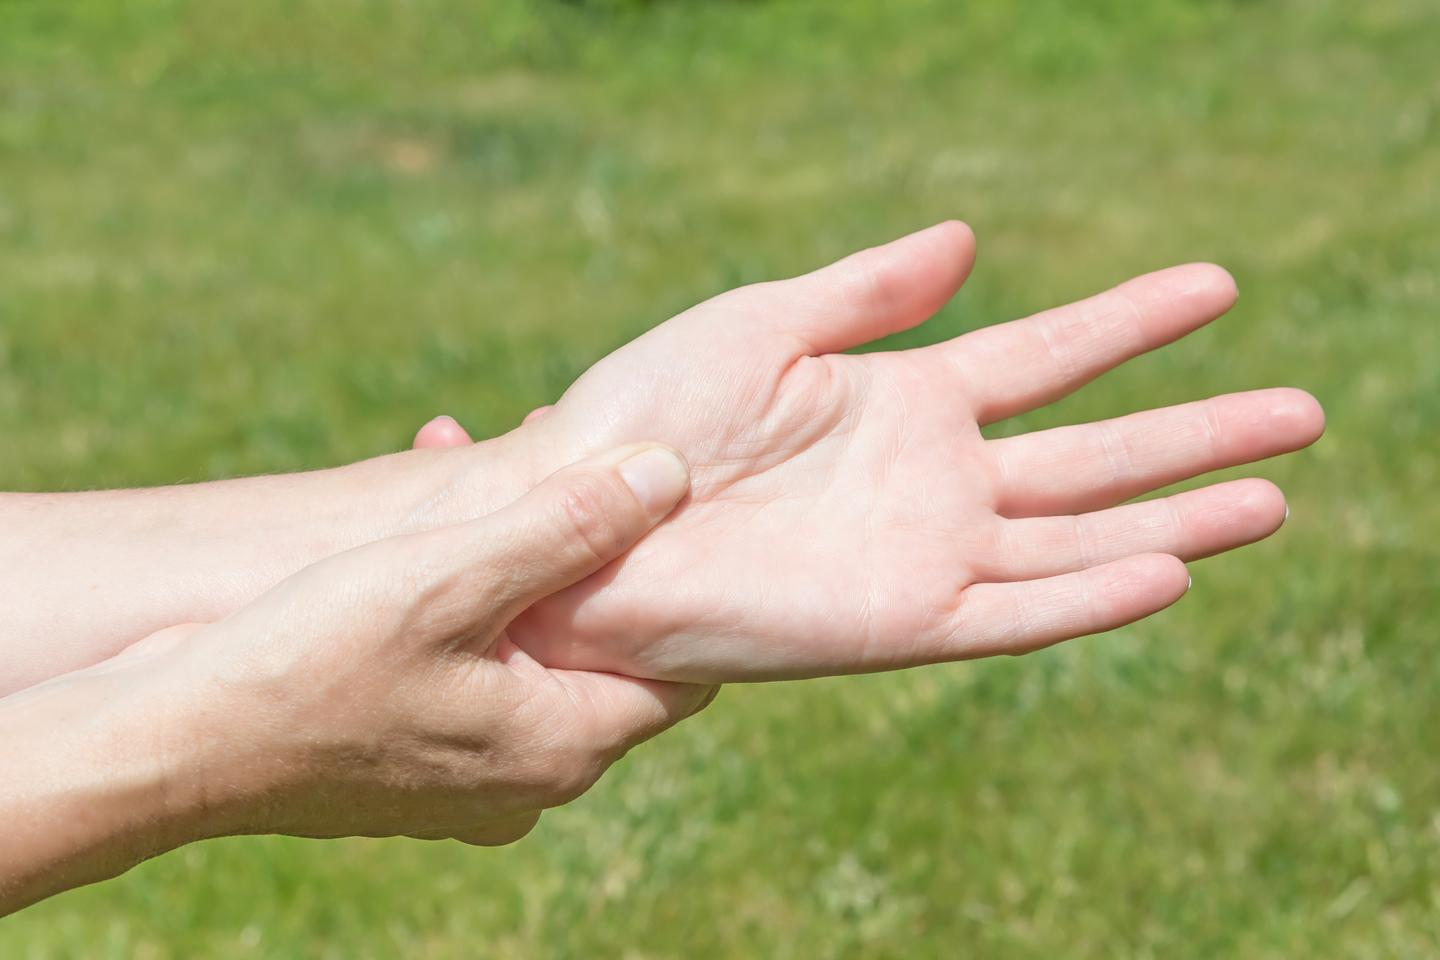 The material could find use in the treatment of carpal tunnel syndrome